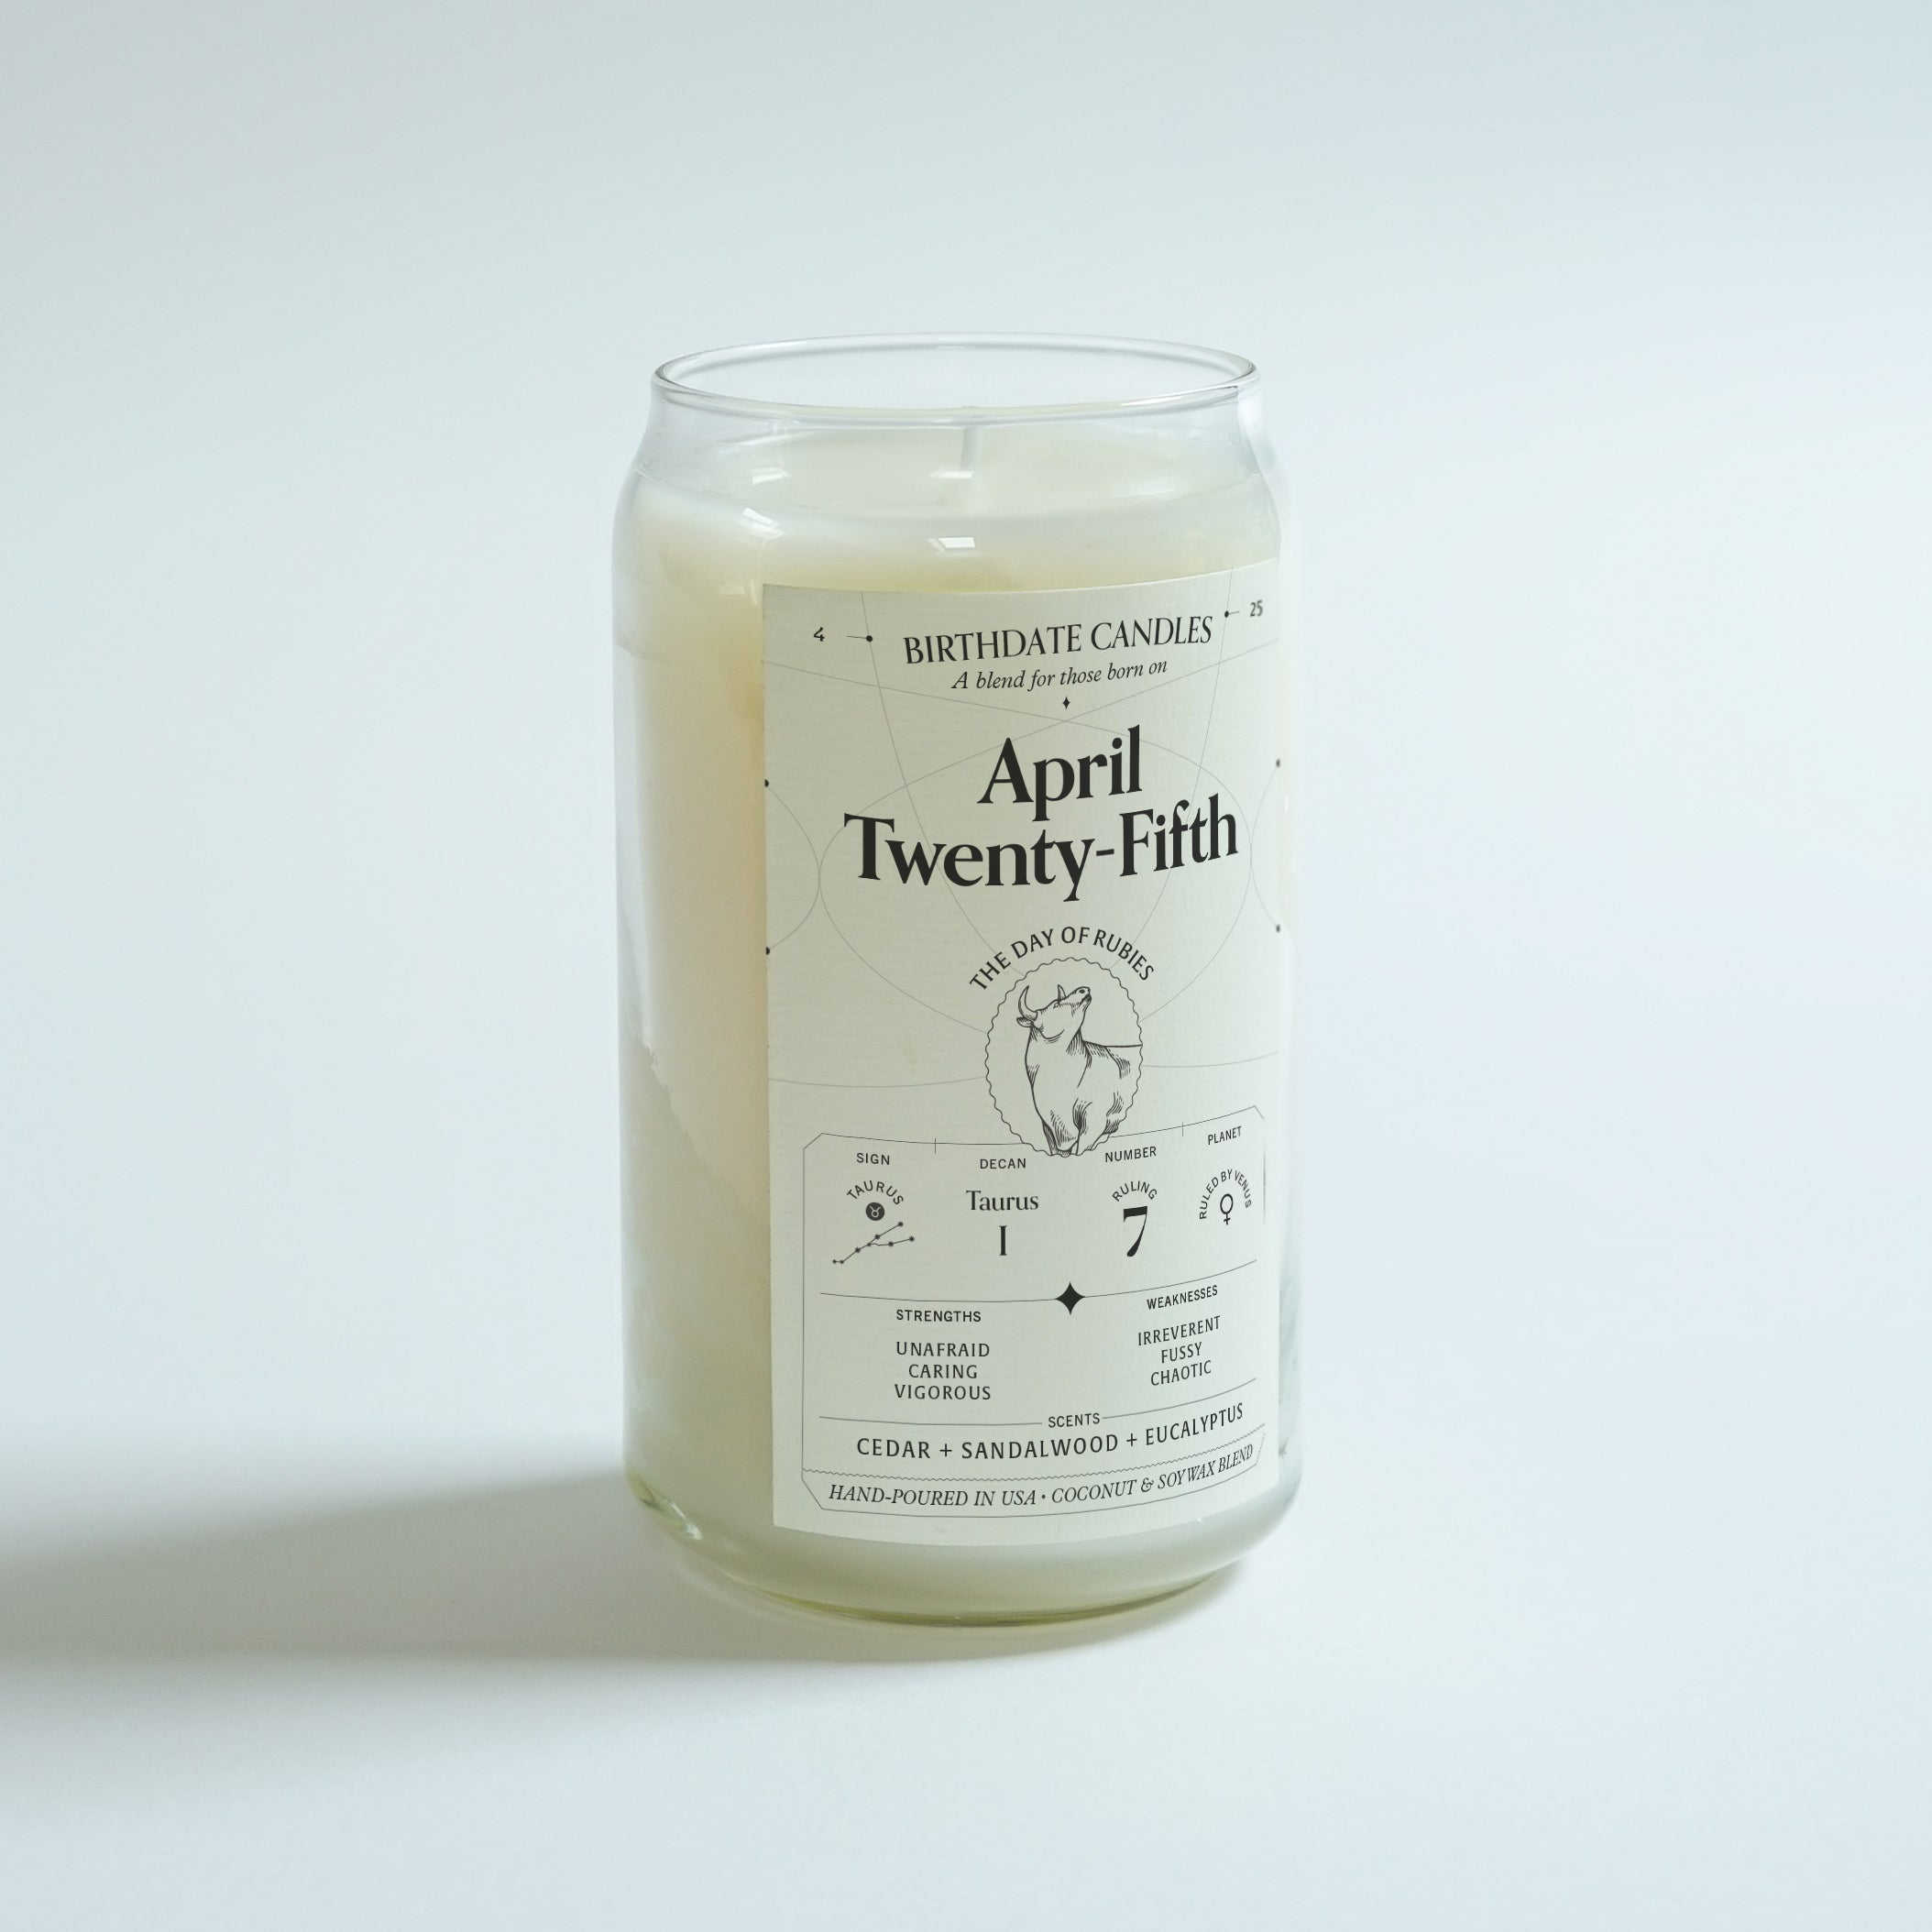 The April Twenty-Fifth Candle